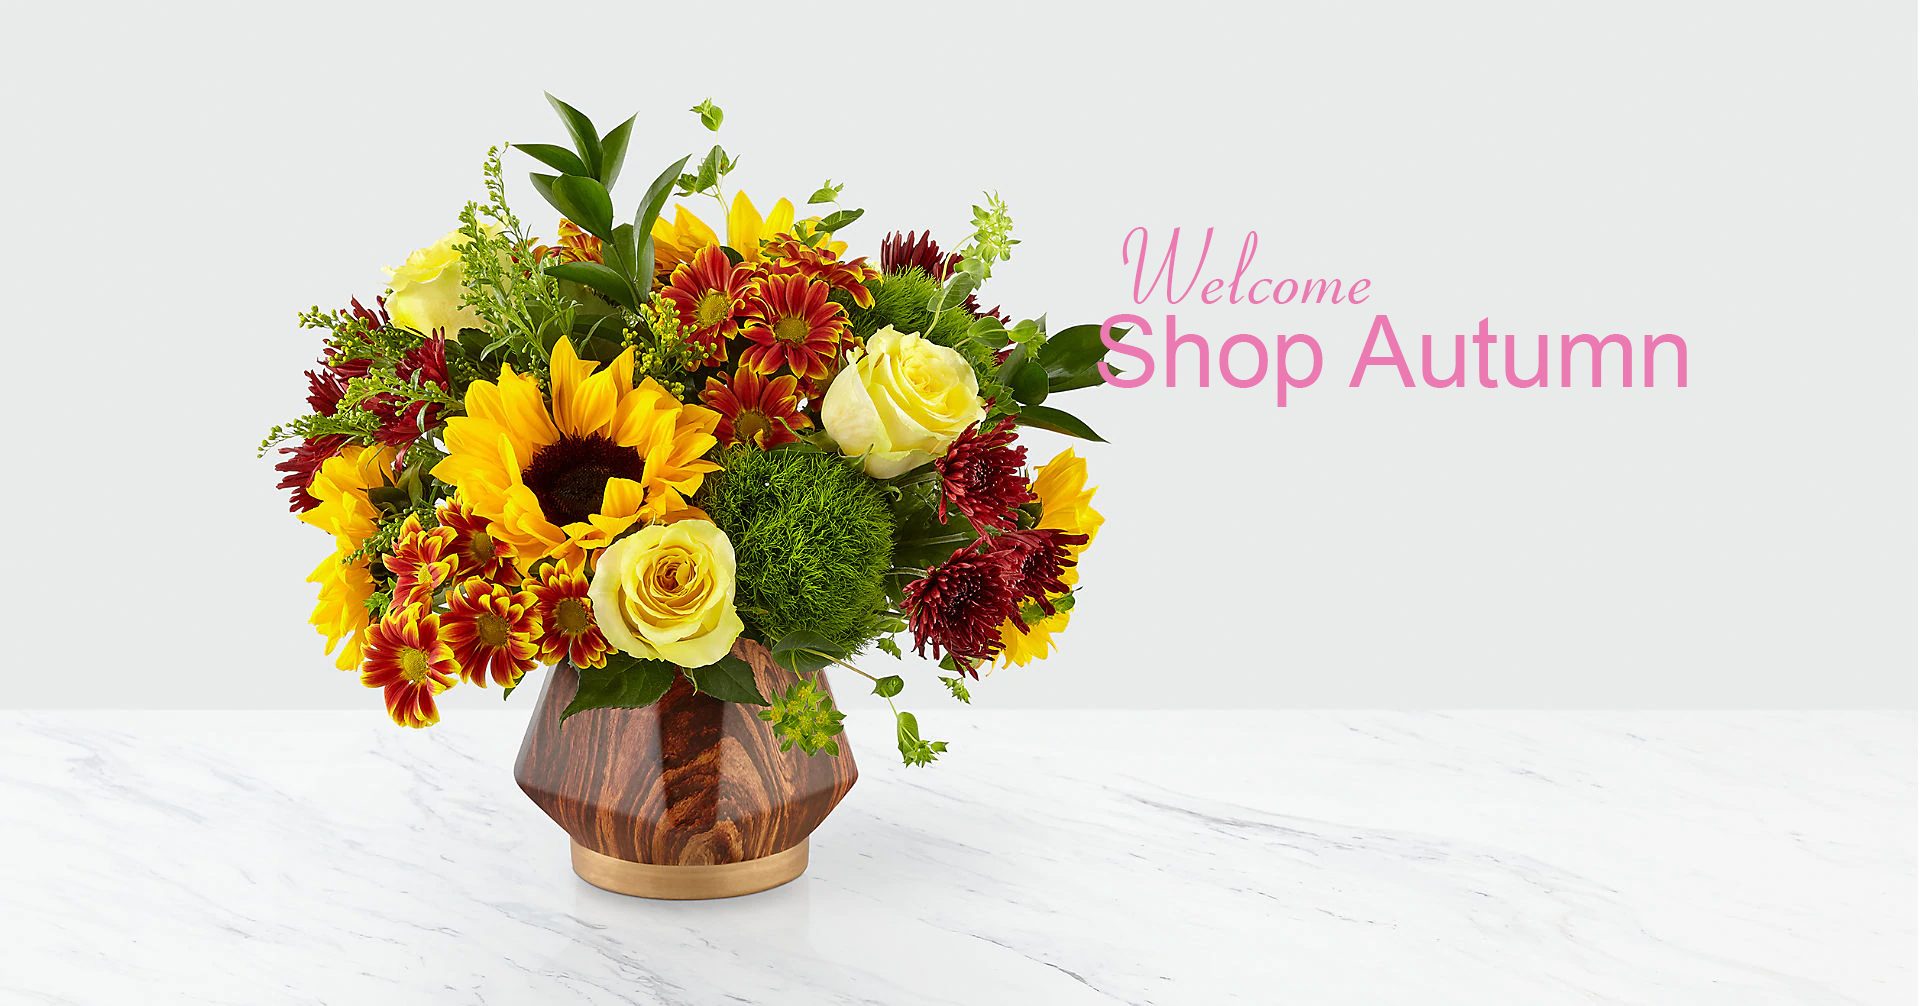 For a limited time our Fall Harvest Bouquet. Set in a striking, wood inspired geometric ceramic vase, this arrangement is comprised of gorgeous yellow roses, sunflowers, green trick dianthus and more.